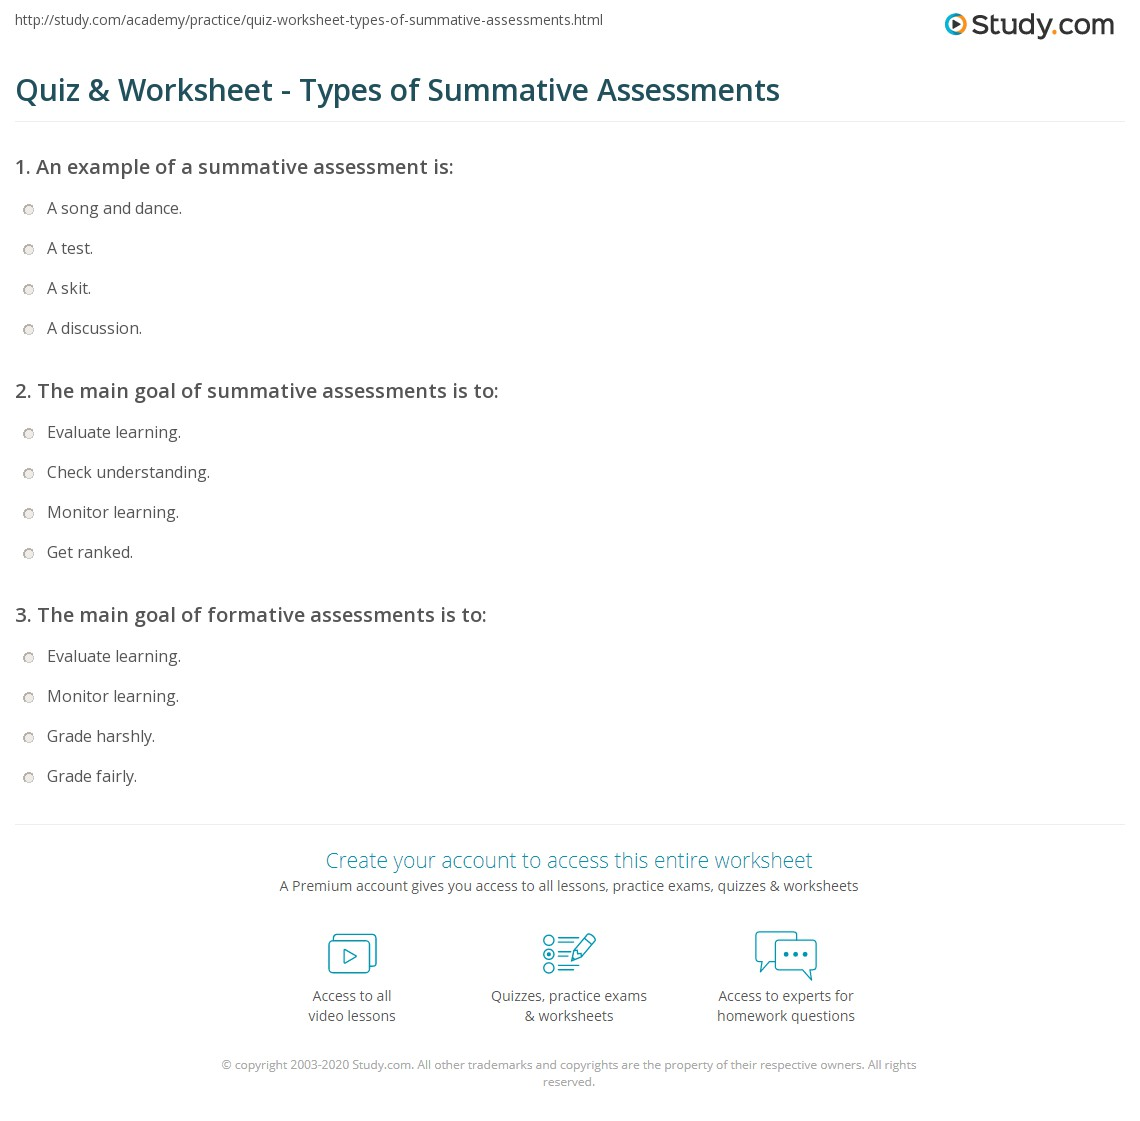 hr diagram test question quiz amp worksheet types of summative assessments study com polaris hr diagram #4